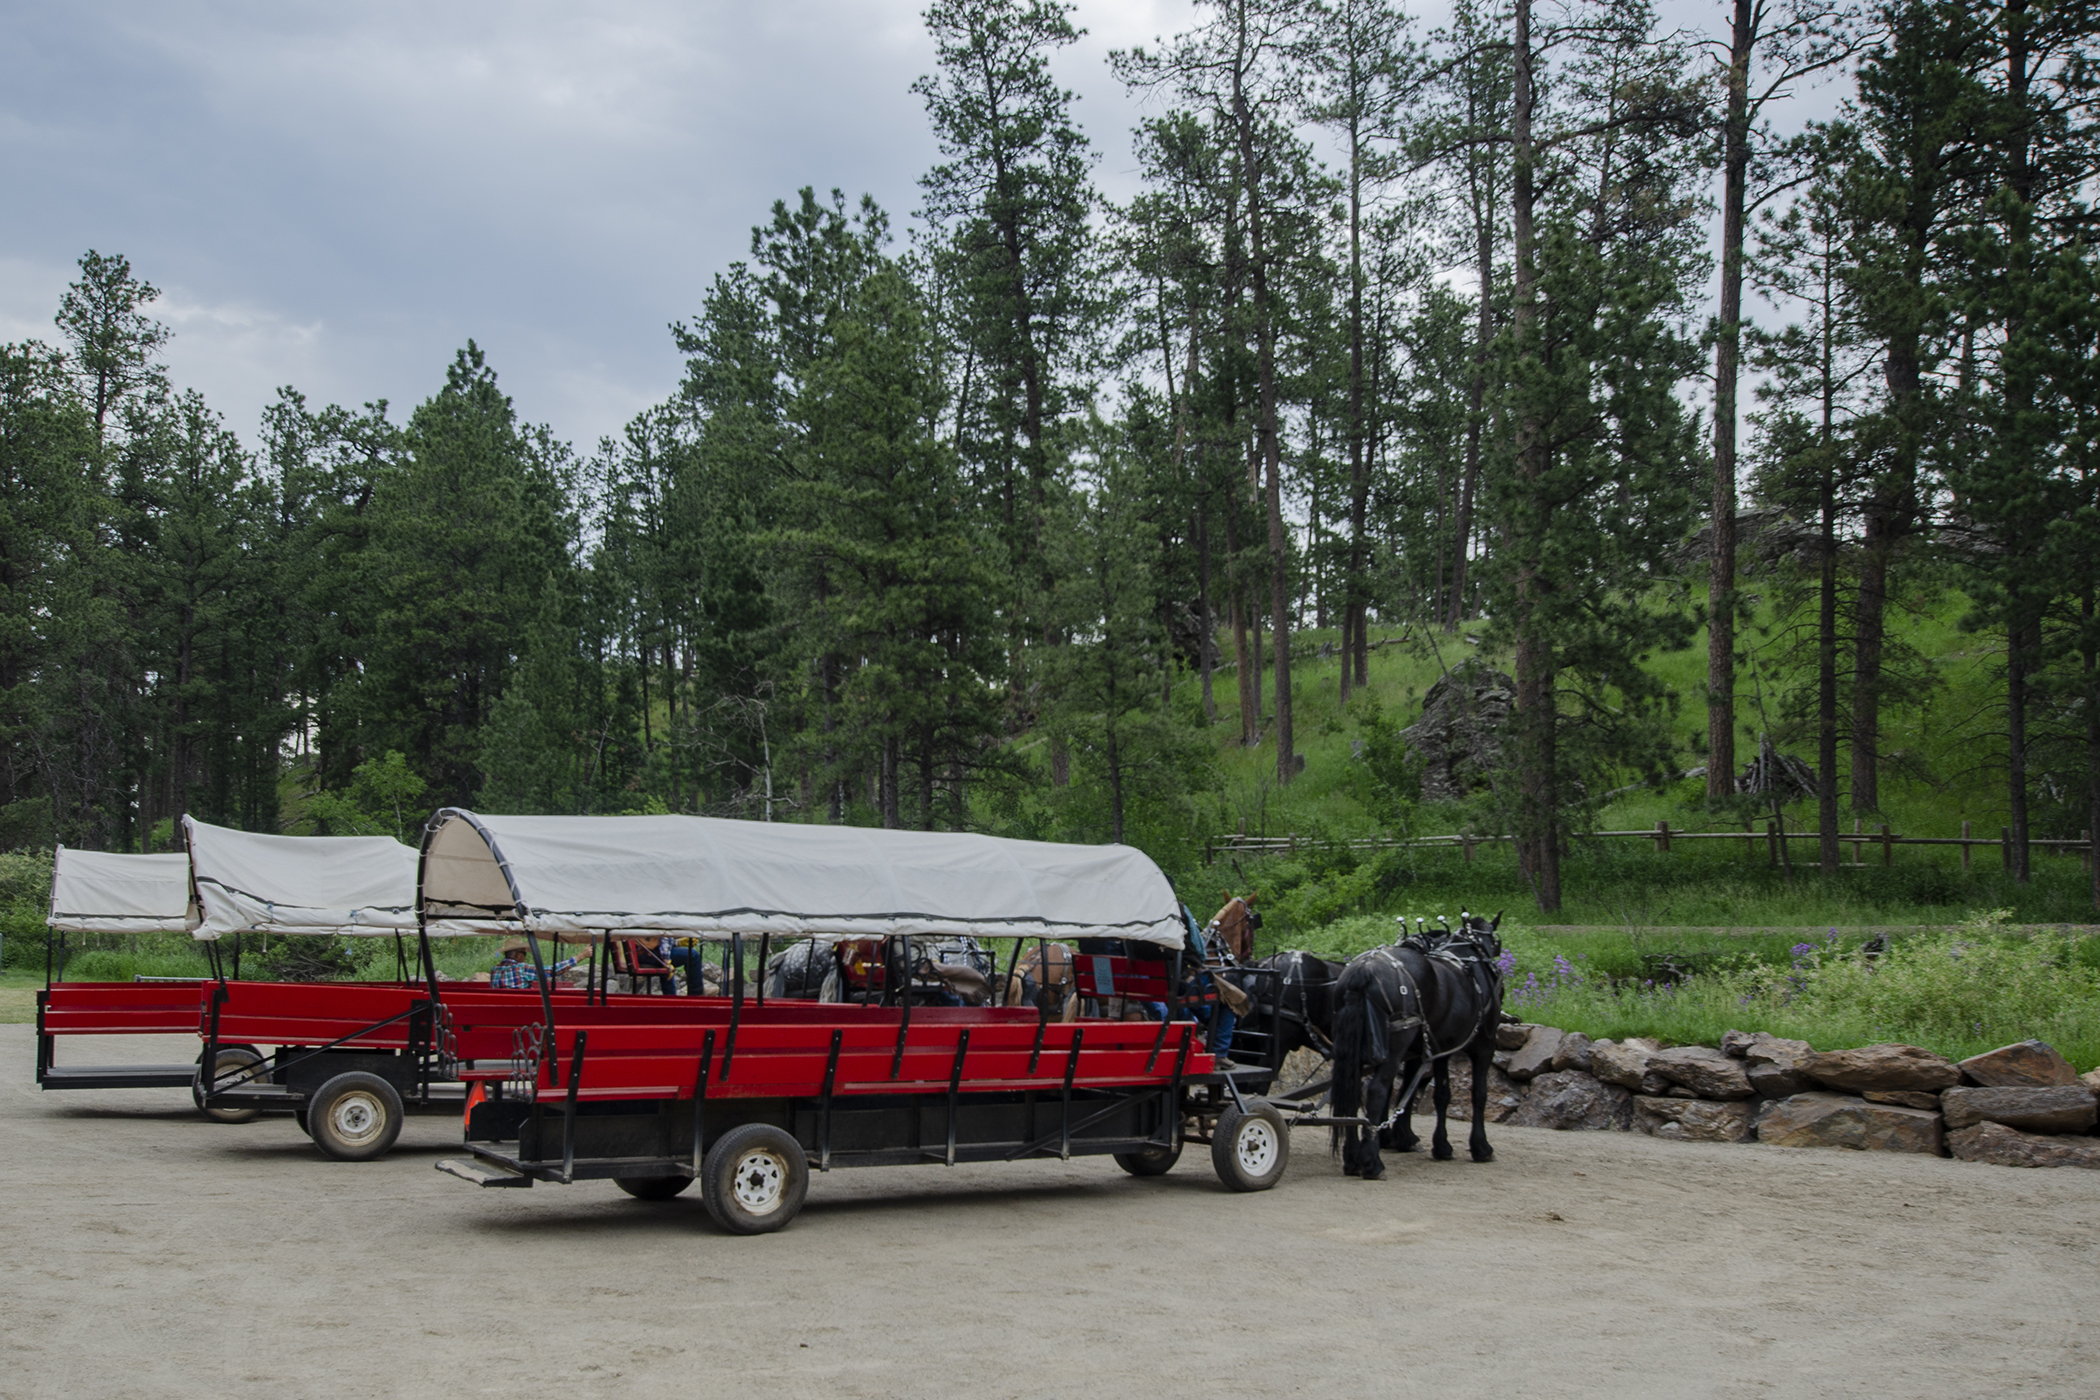 Covered wagons lined up